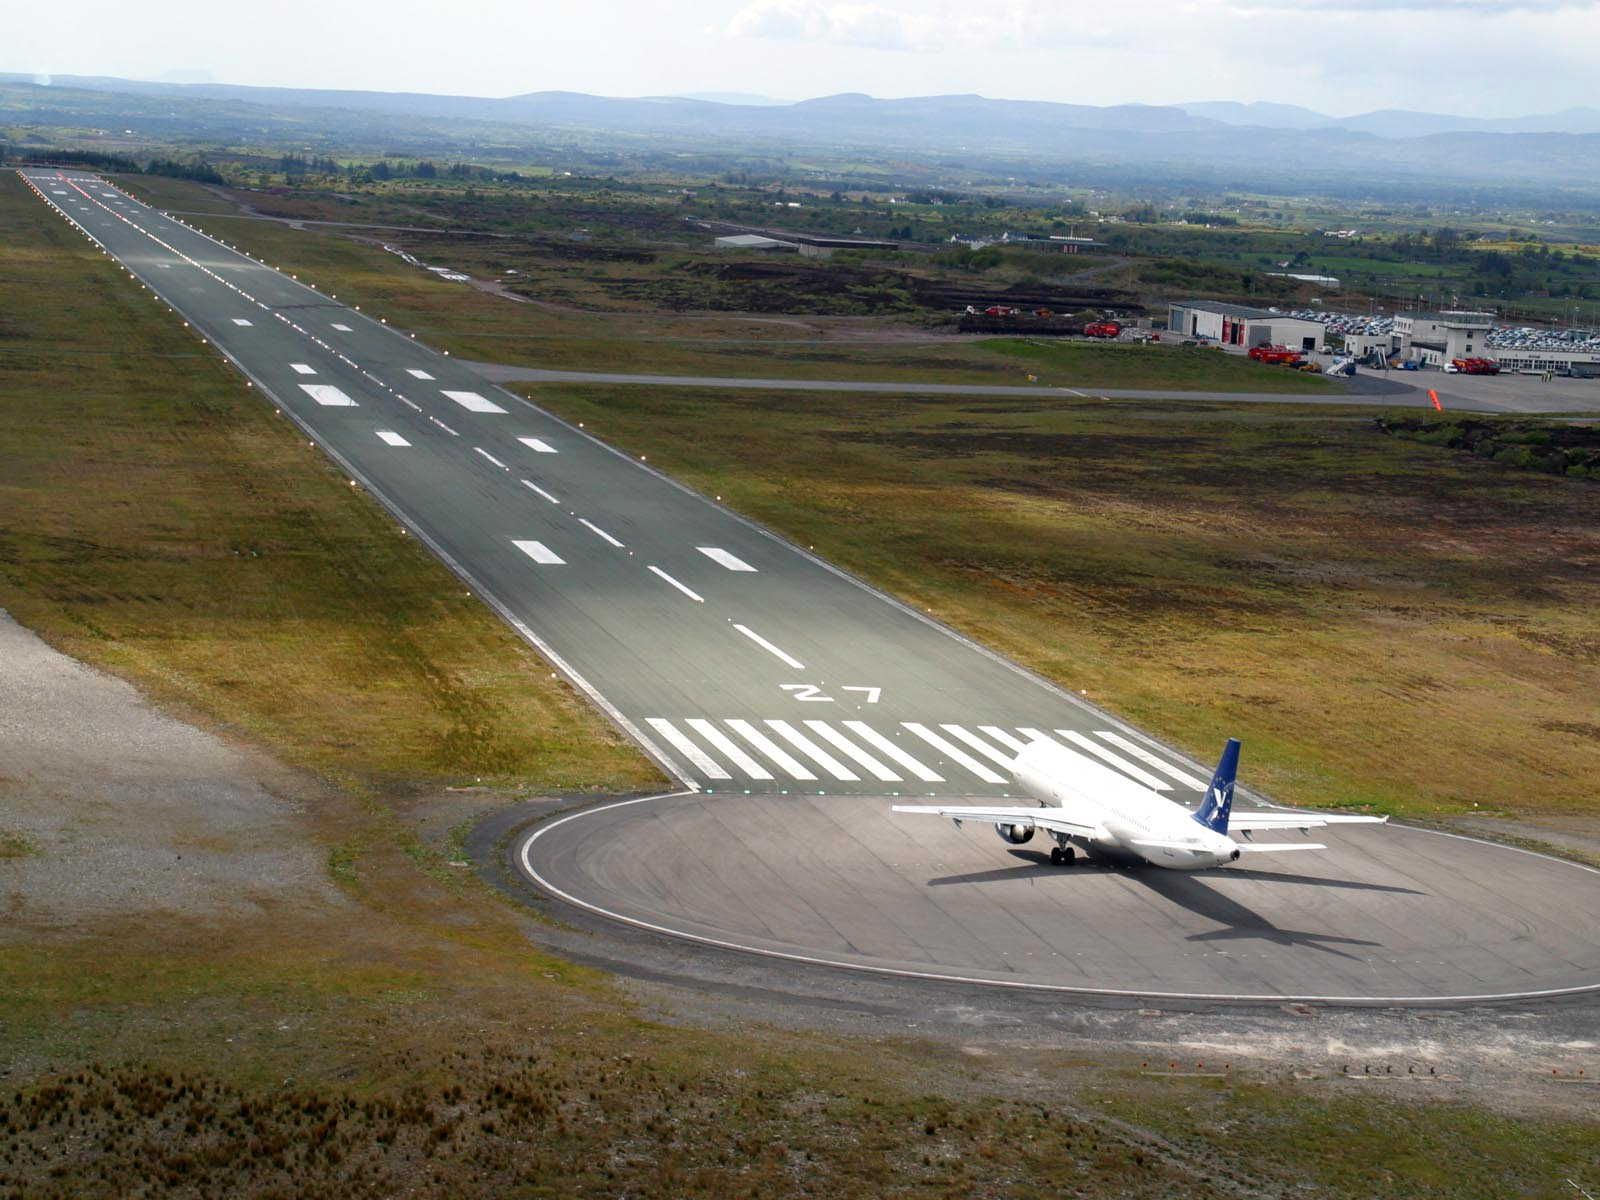 airport runway after the speeding vehicle crashes